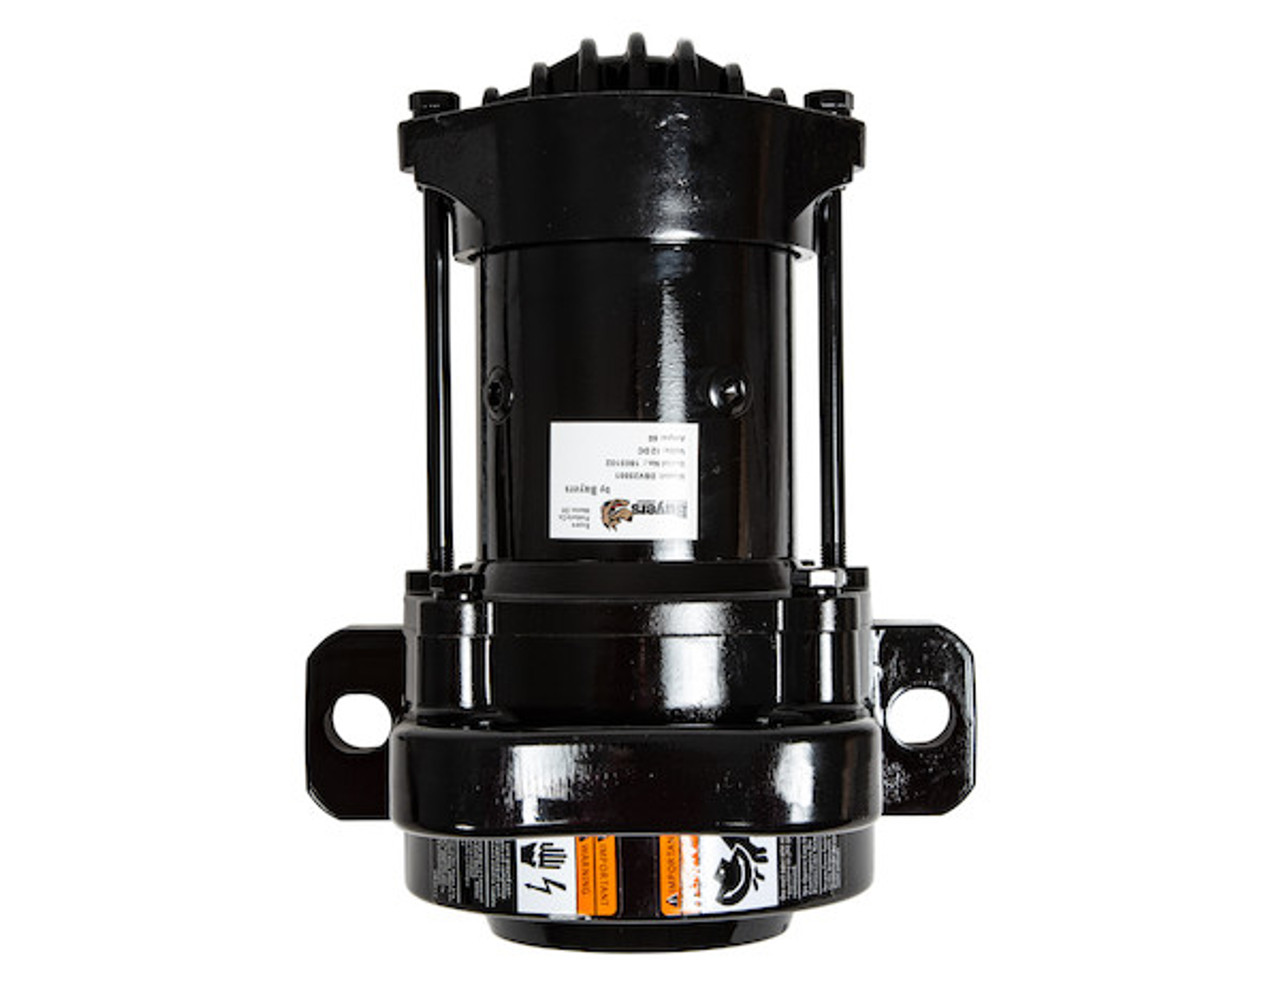 DBV25001 Buyers Salt Dogg Spreader Replacement 2500 LB VIBRATOR for 1406657SSH Picture #4